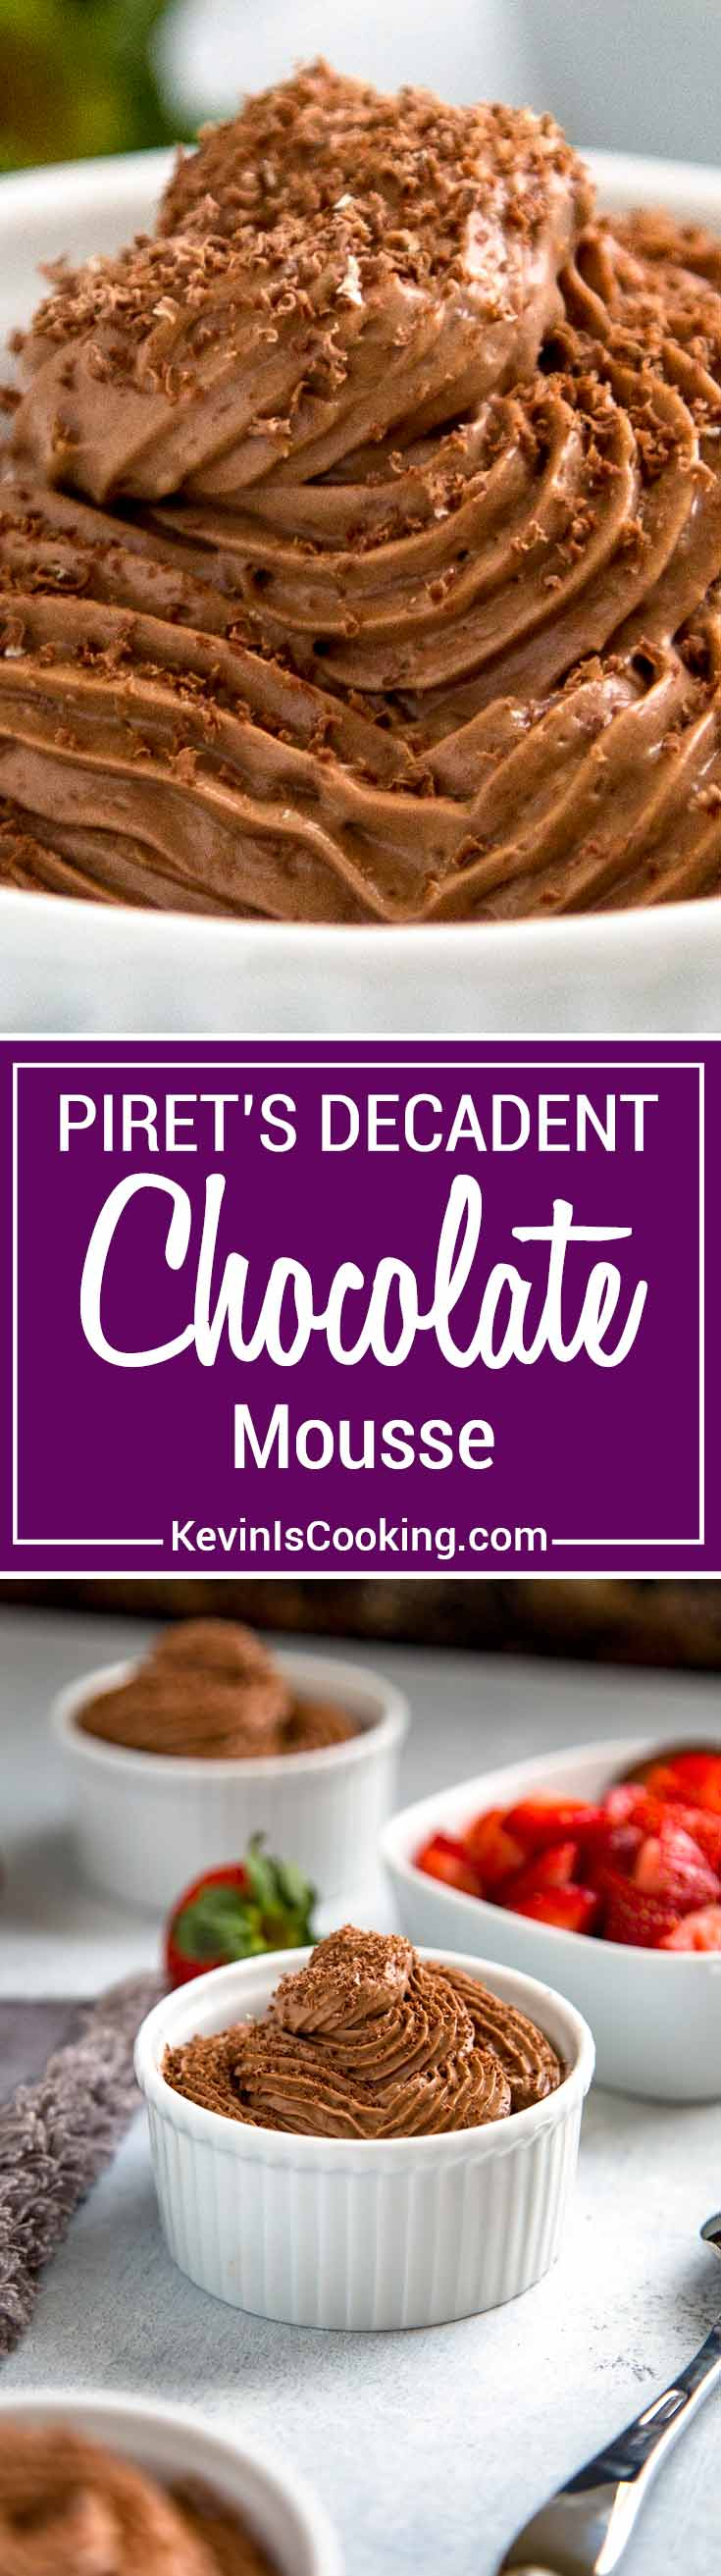 Piret's Chocolate Mousse is a classic French dessert made with melted chocolate, eggs and whipping cream that I learned to make at Piret's in San Diego.